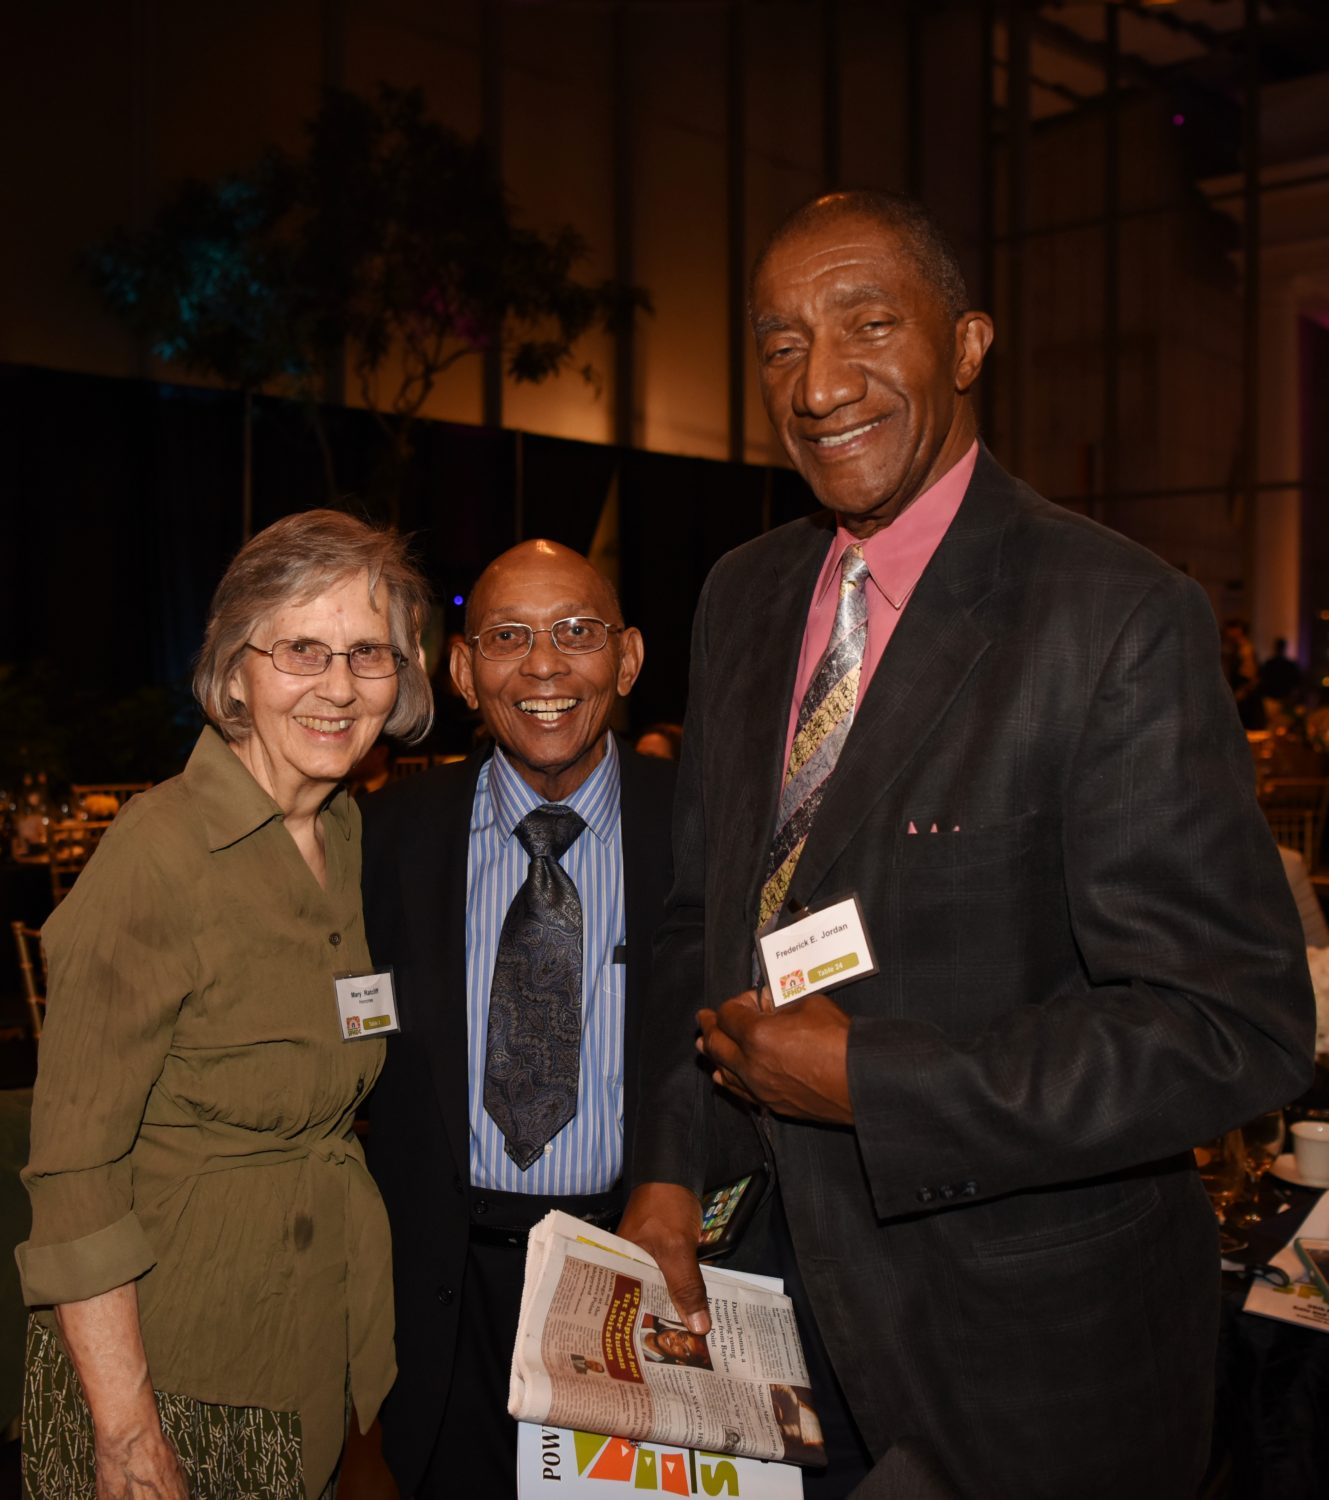 Power-in-Numbers-SFHDC-Gala-Mary-Willie-Ratcliff-Fred-Jordan-Academy-of-Sciences-051118-by-Johnnie-Burrell, Don't just survive, but thrive: The legacy of Fred Jordan, Local News & Views